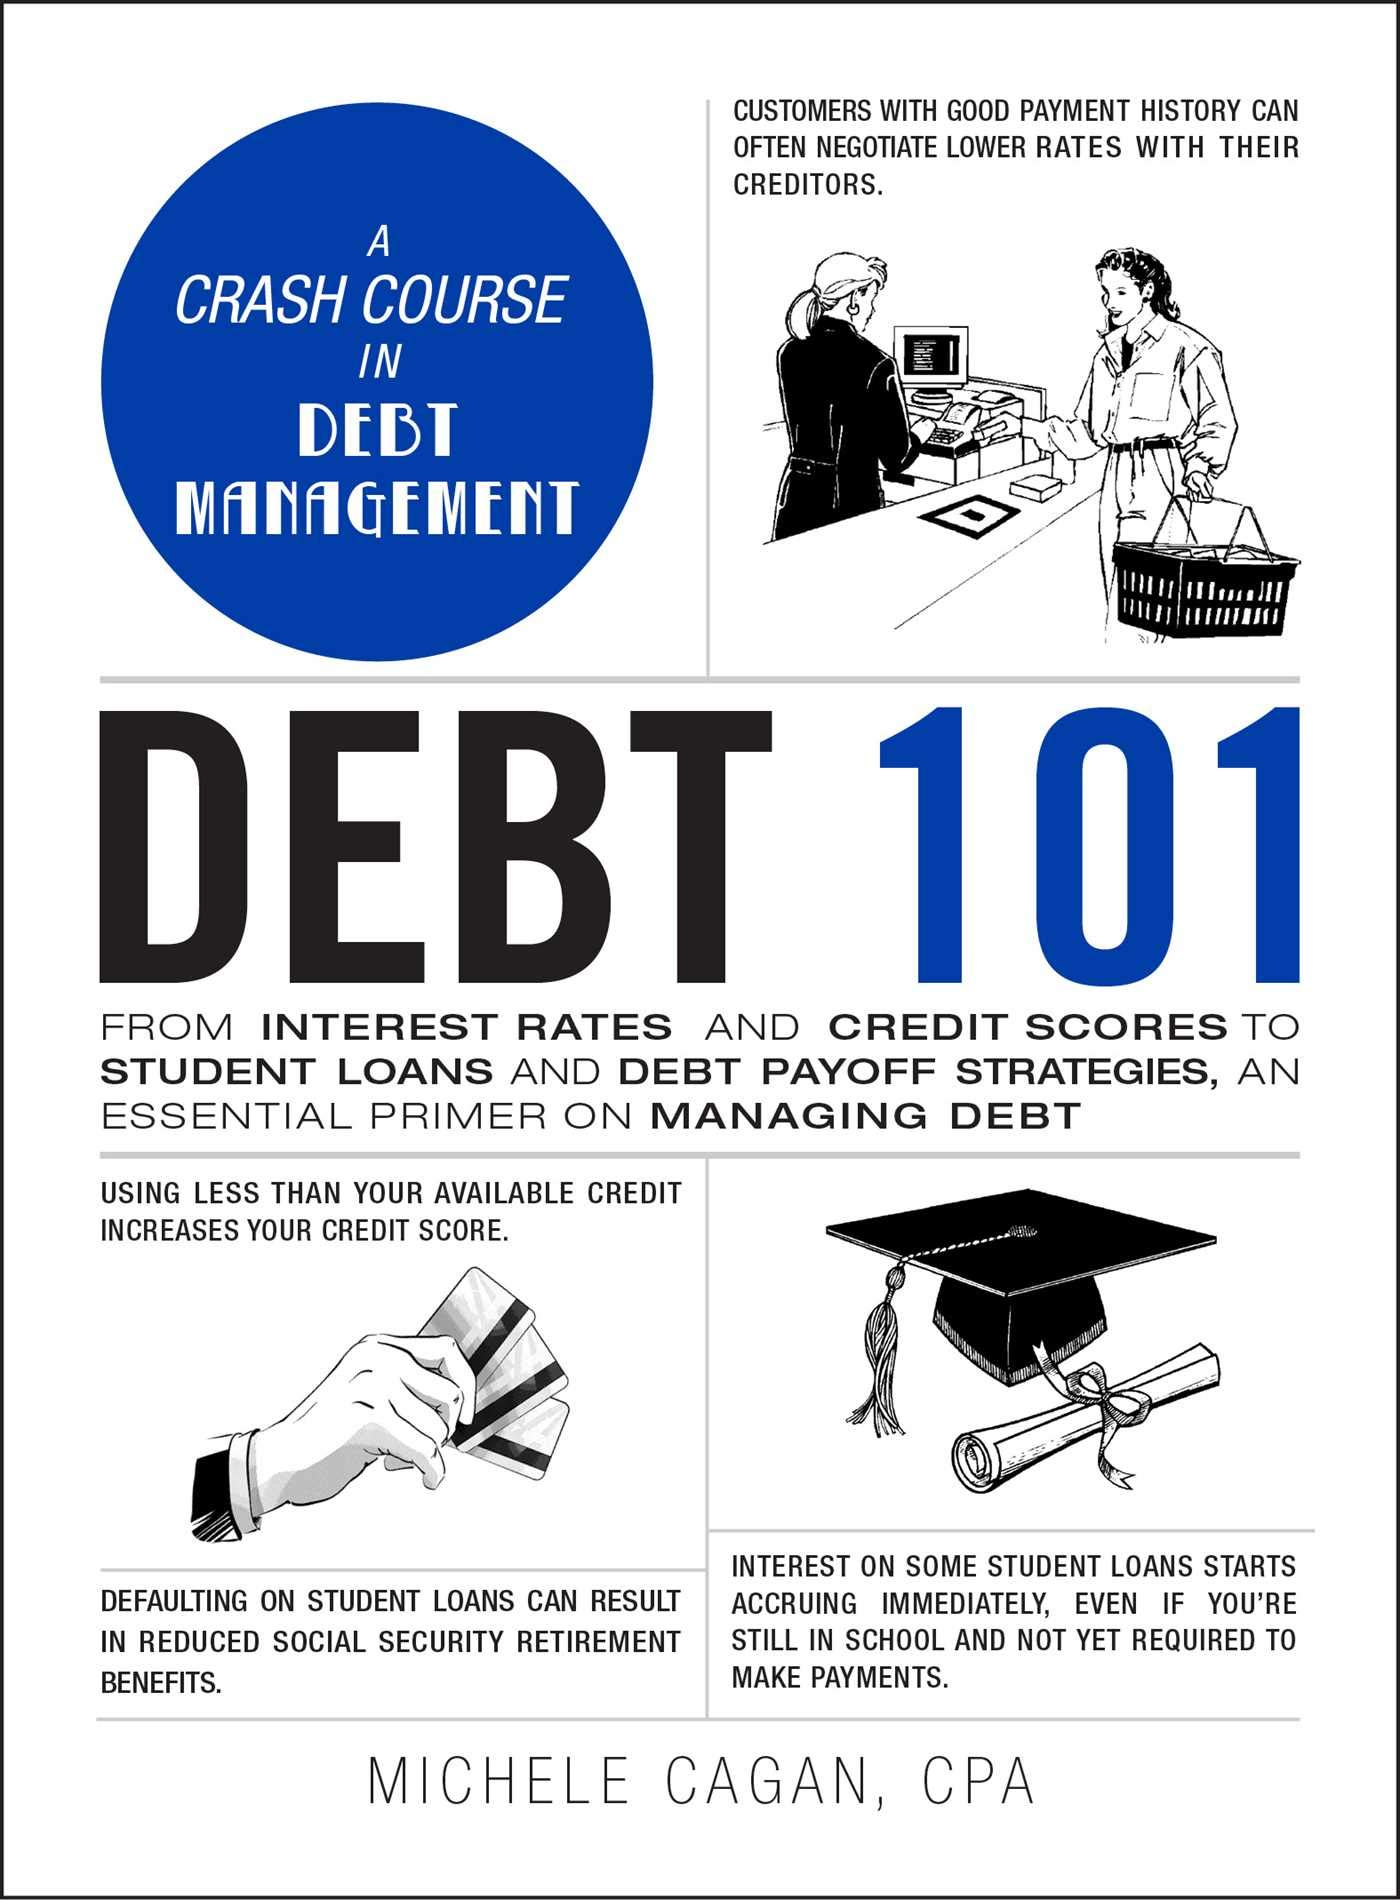 Debt 101 From Interest Rates And Credit Scores To Student Loans And Debt Payoff Strategies An Essential Primer On Managing Debt Adams 101 Cagan Cpa Michele 9781507212660 Amazon Com Books